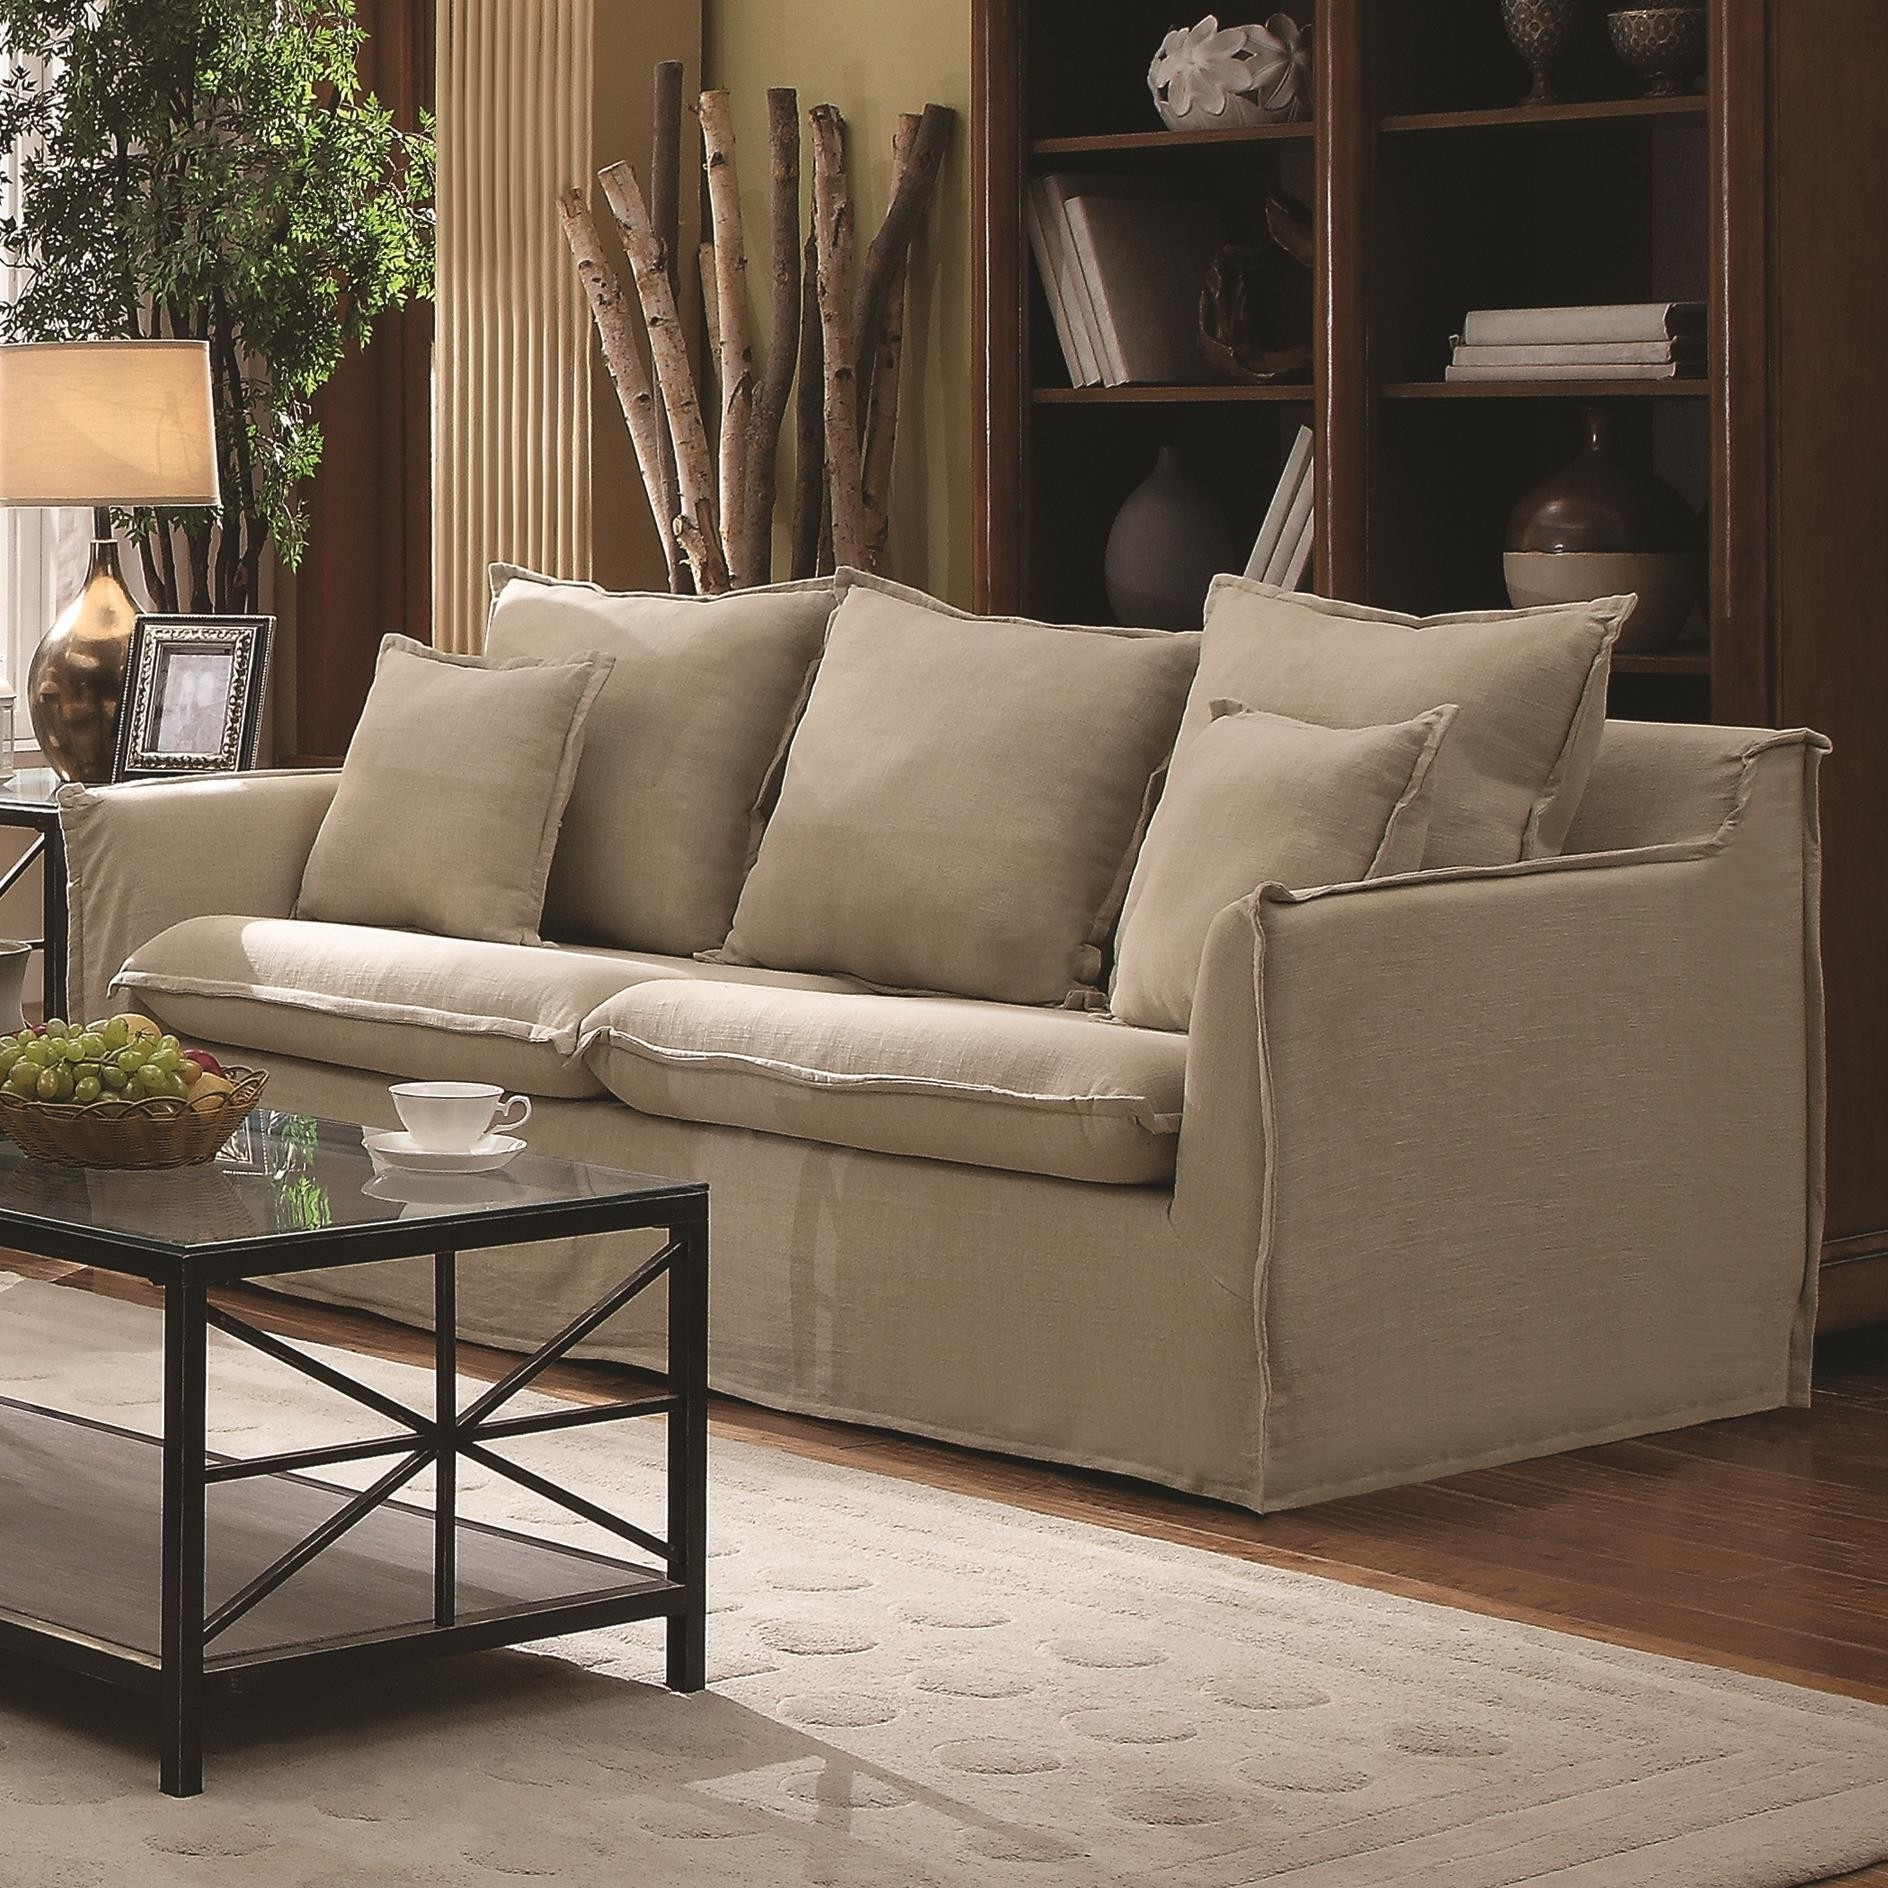 Sofas With Washable Slipcovers – Nrhcares In Most Popular Washable Sofas (View 5 of 20)